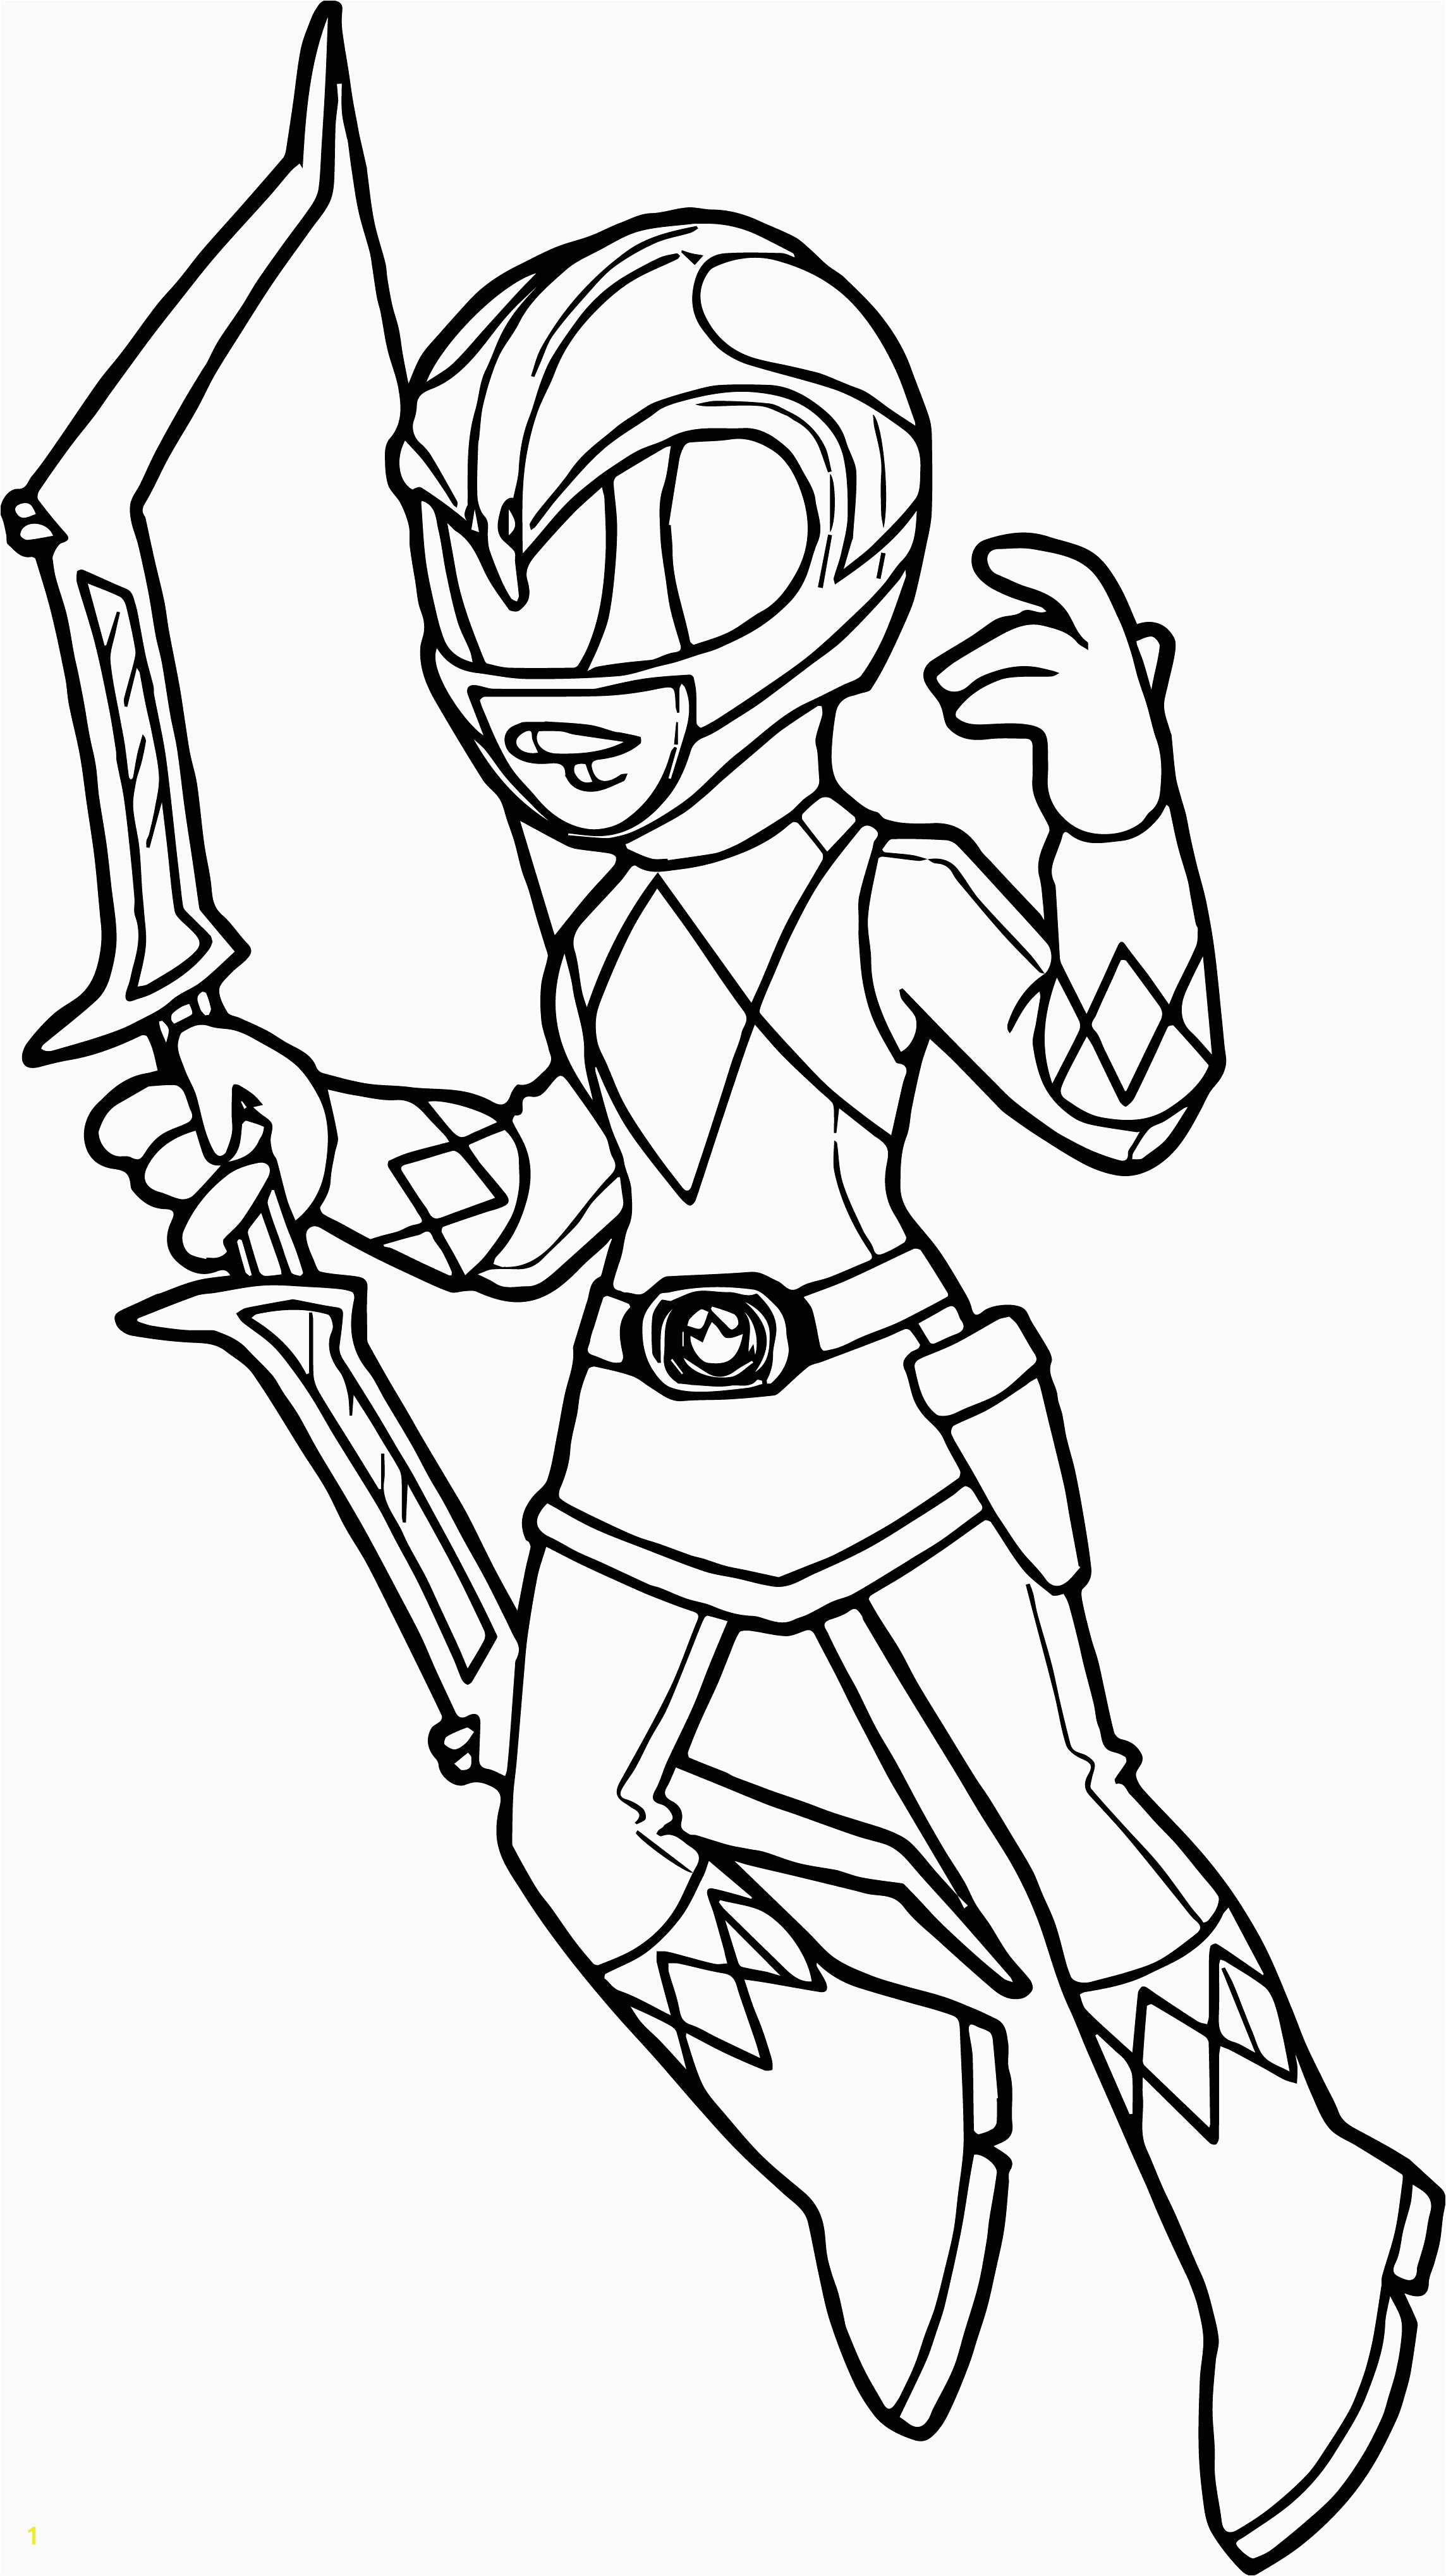 Green Power Ranger Coloring Page Power Rangers Printable Coloring Pages